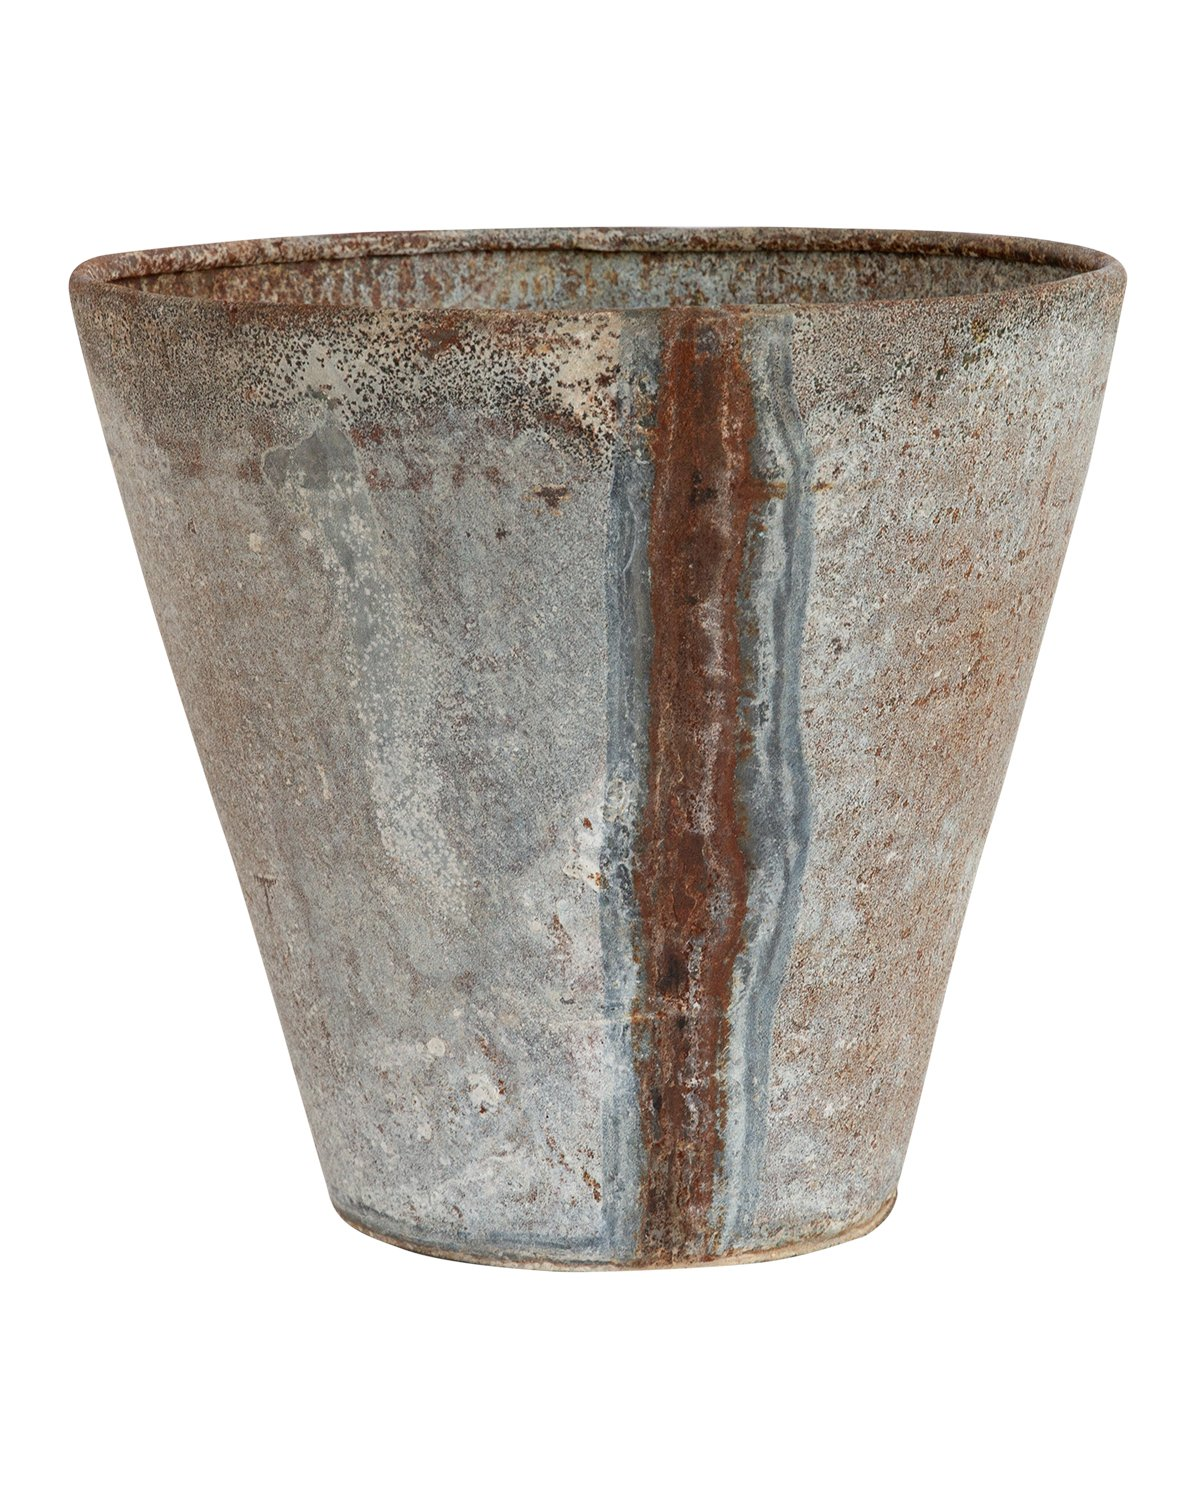 Distressed_Zinc_Planter_5.jpg